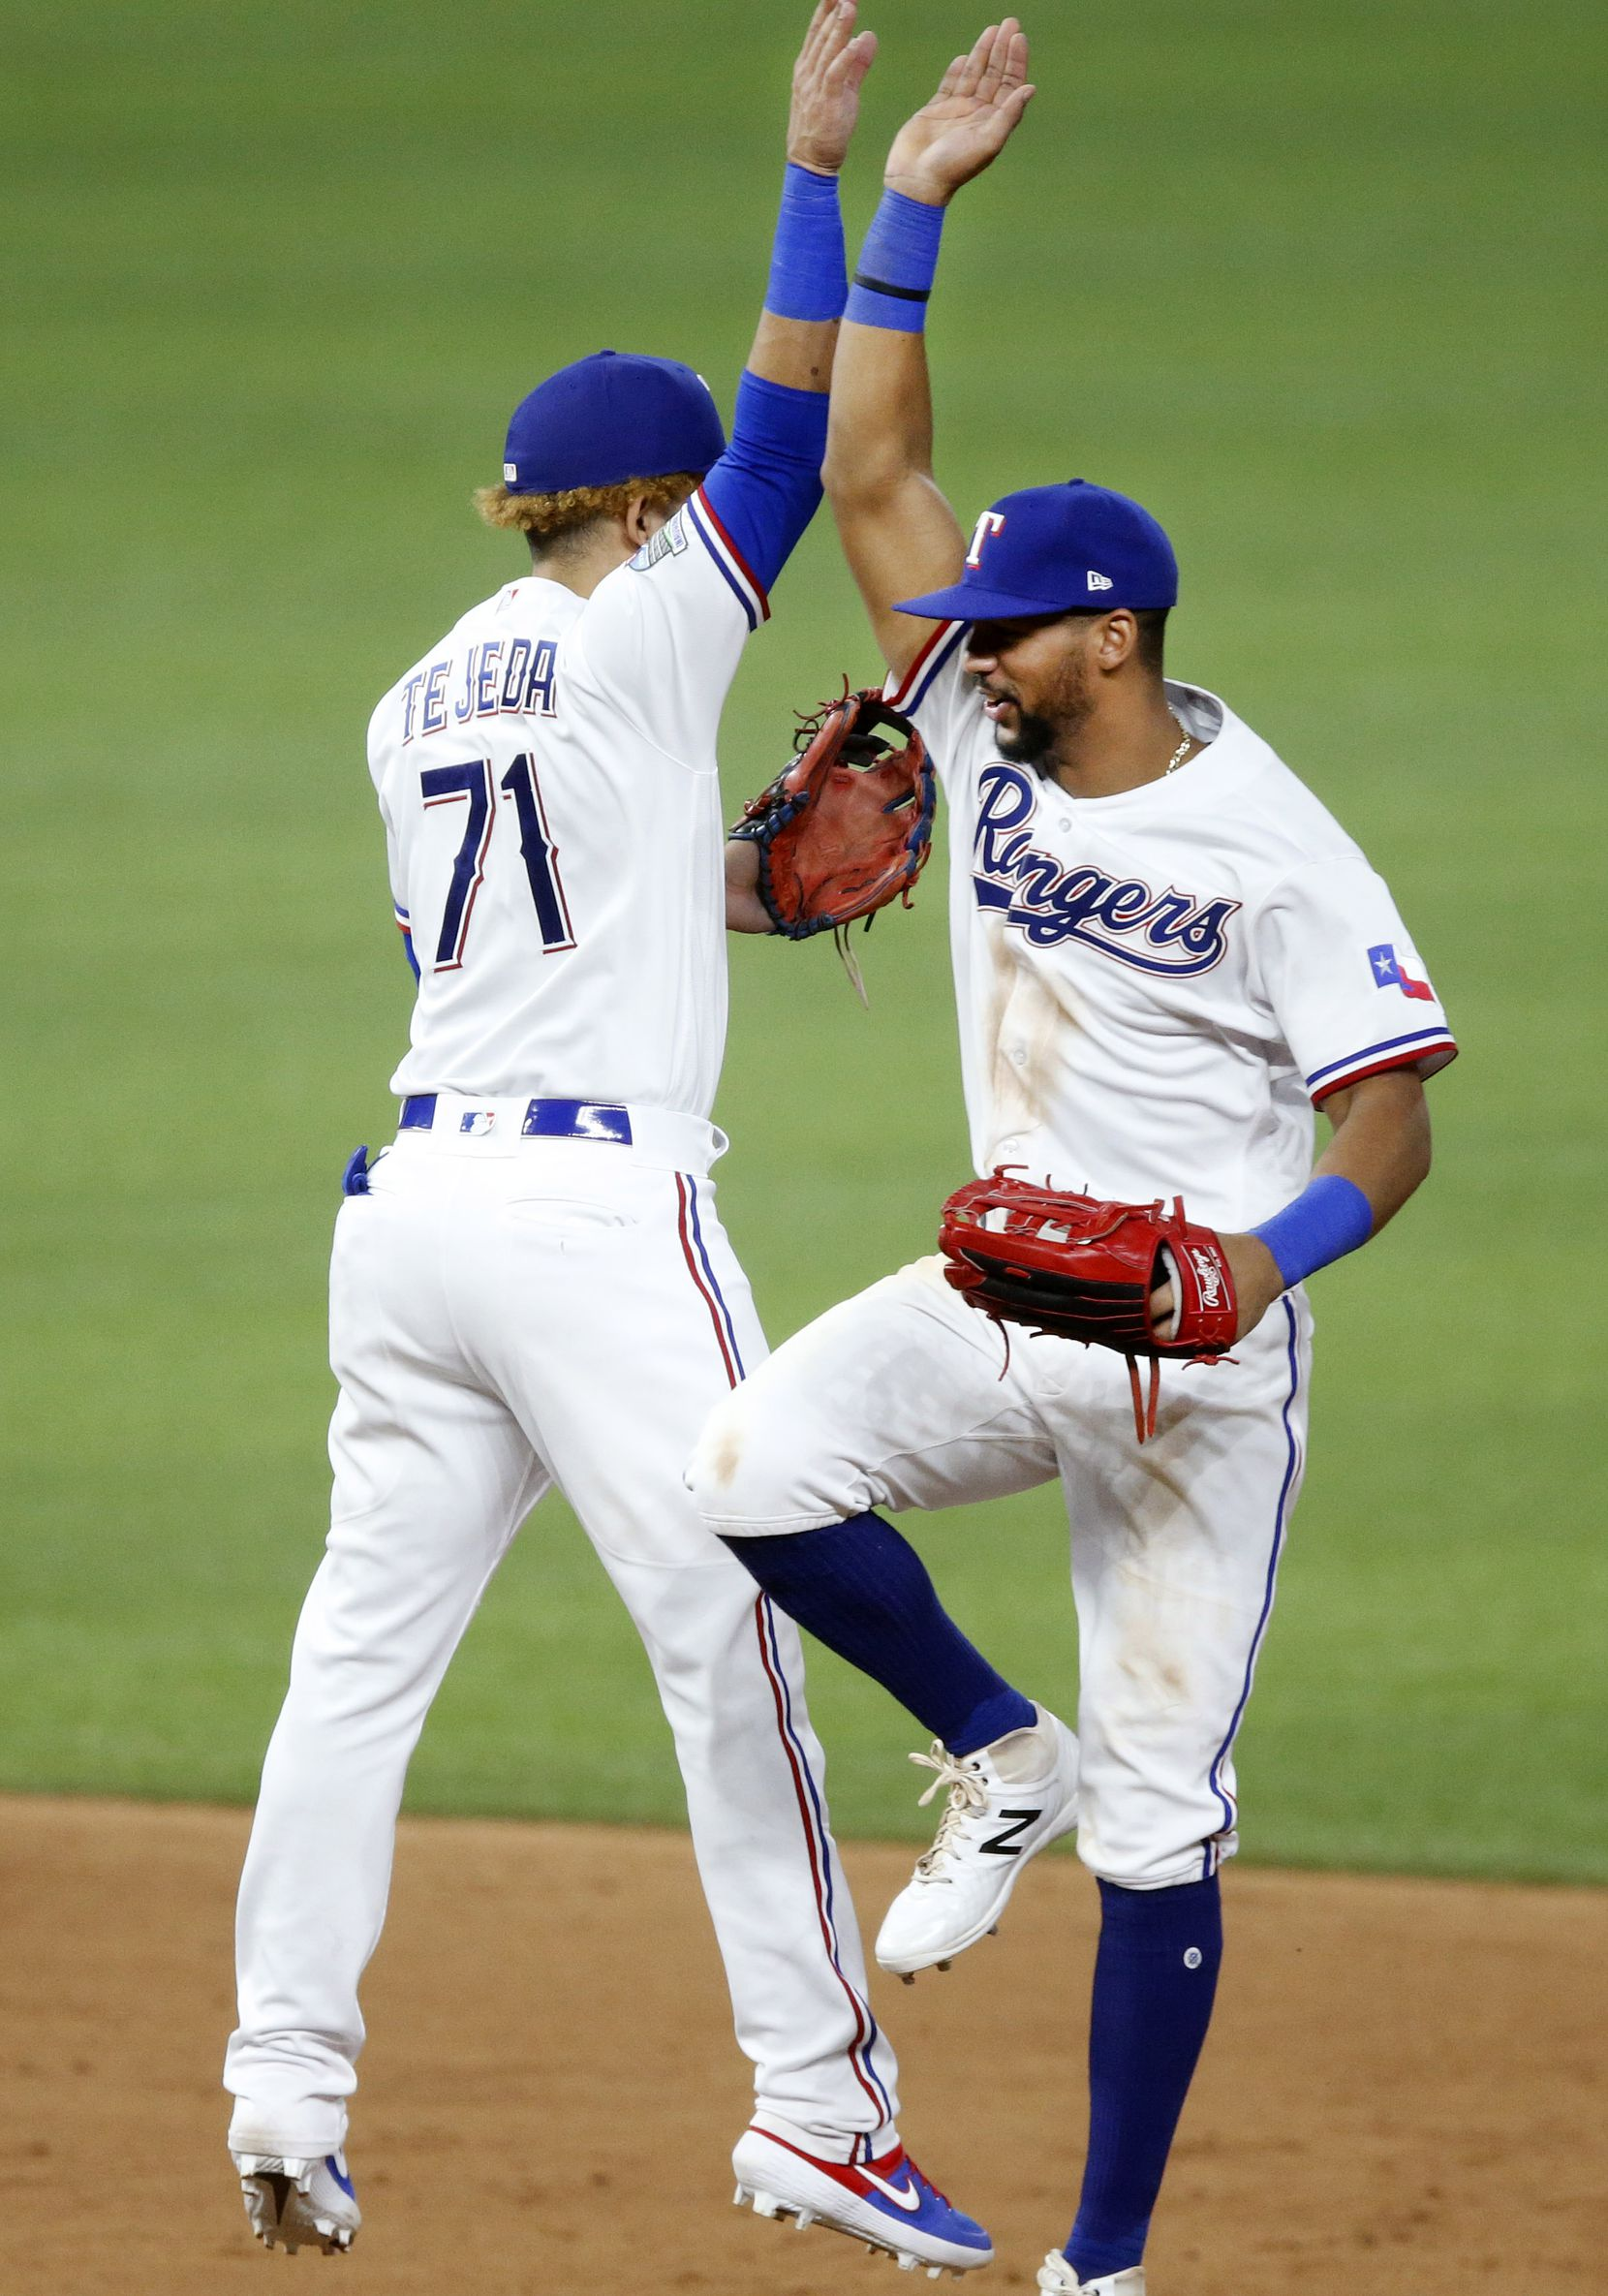 Texas Rangers second basemen Anderson Tejeda (71) and center fielder Leody Taveras high-five after they beat the Los Angeles Angels, 7-1, at Globe Life Field in Arlington, Texas, Tuesday, September 8, 2020. (Tom Fox/The Dallas Morning News)